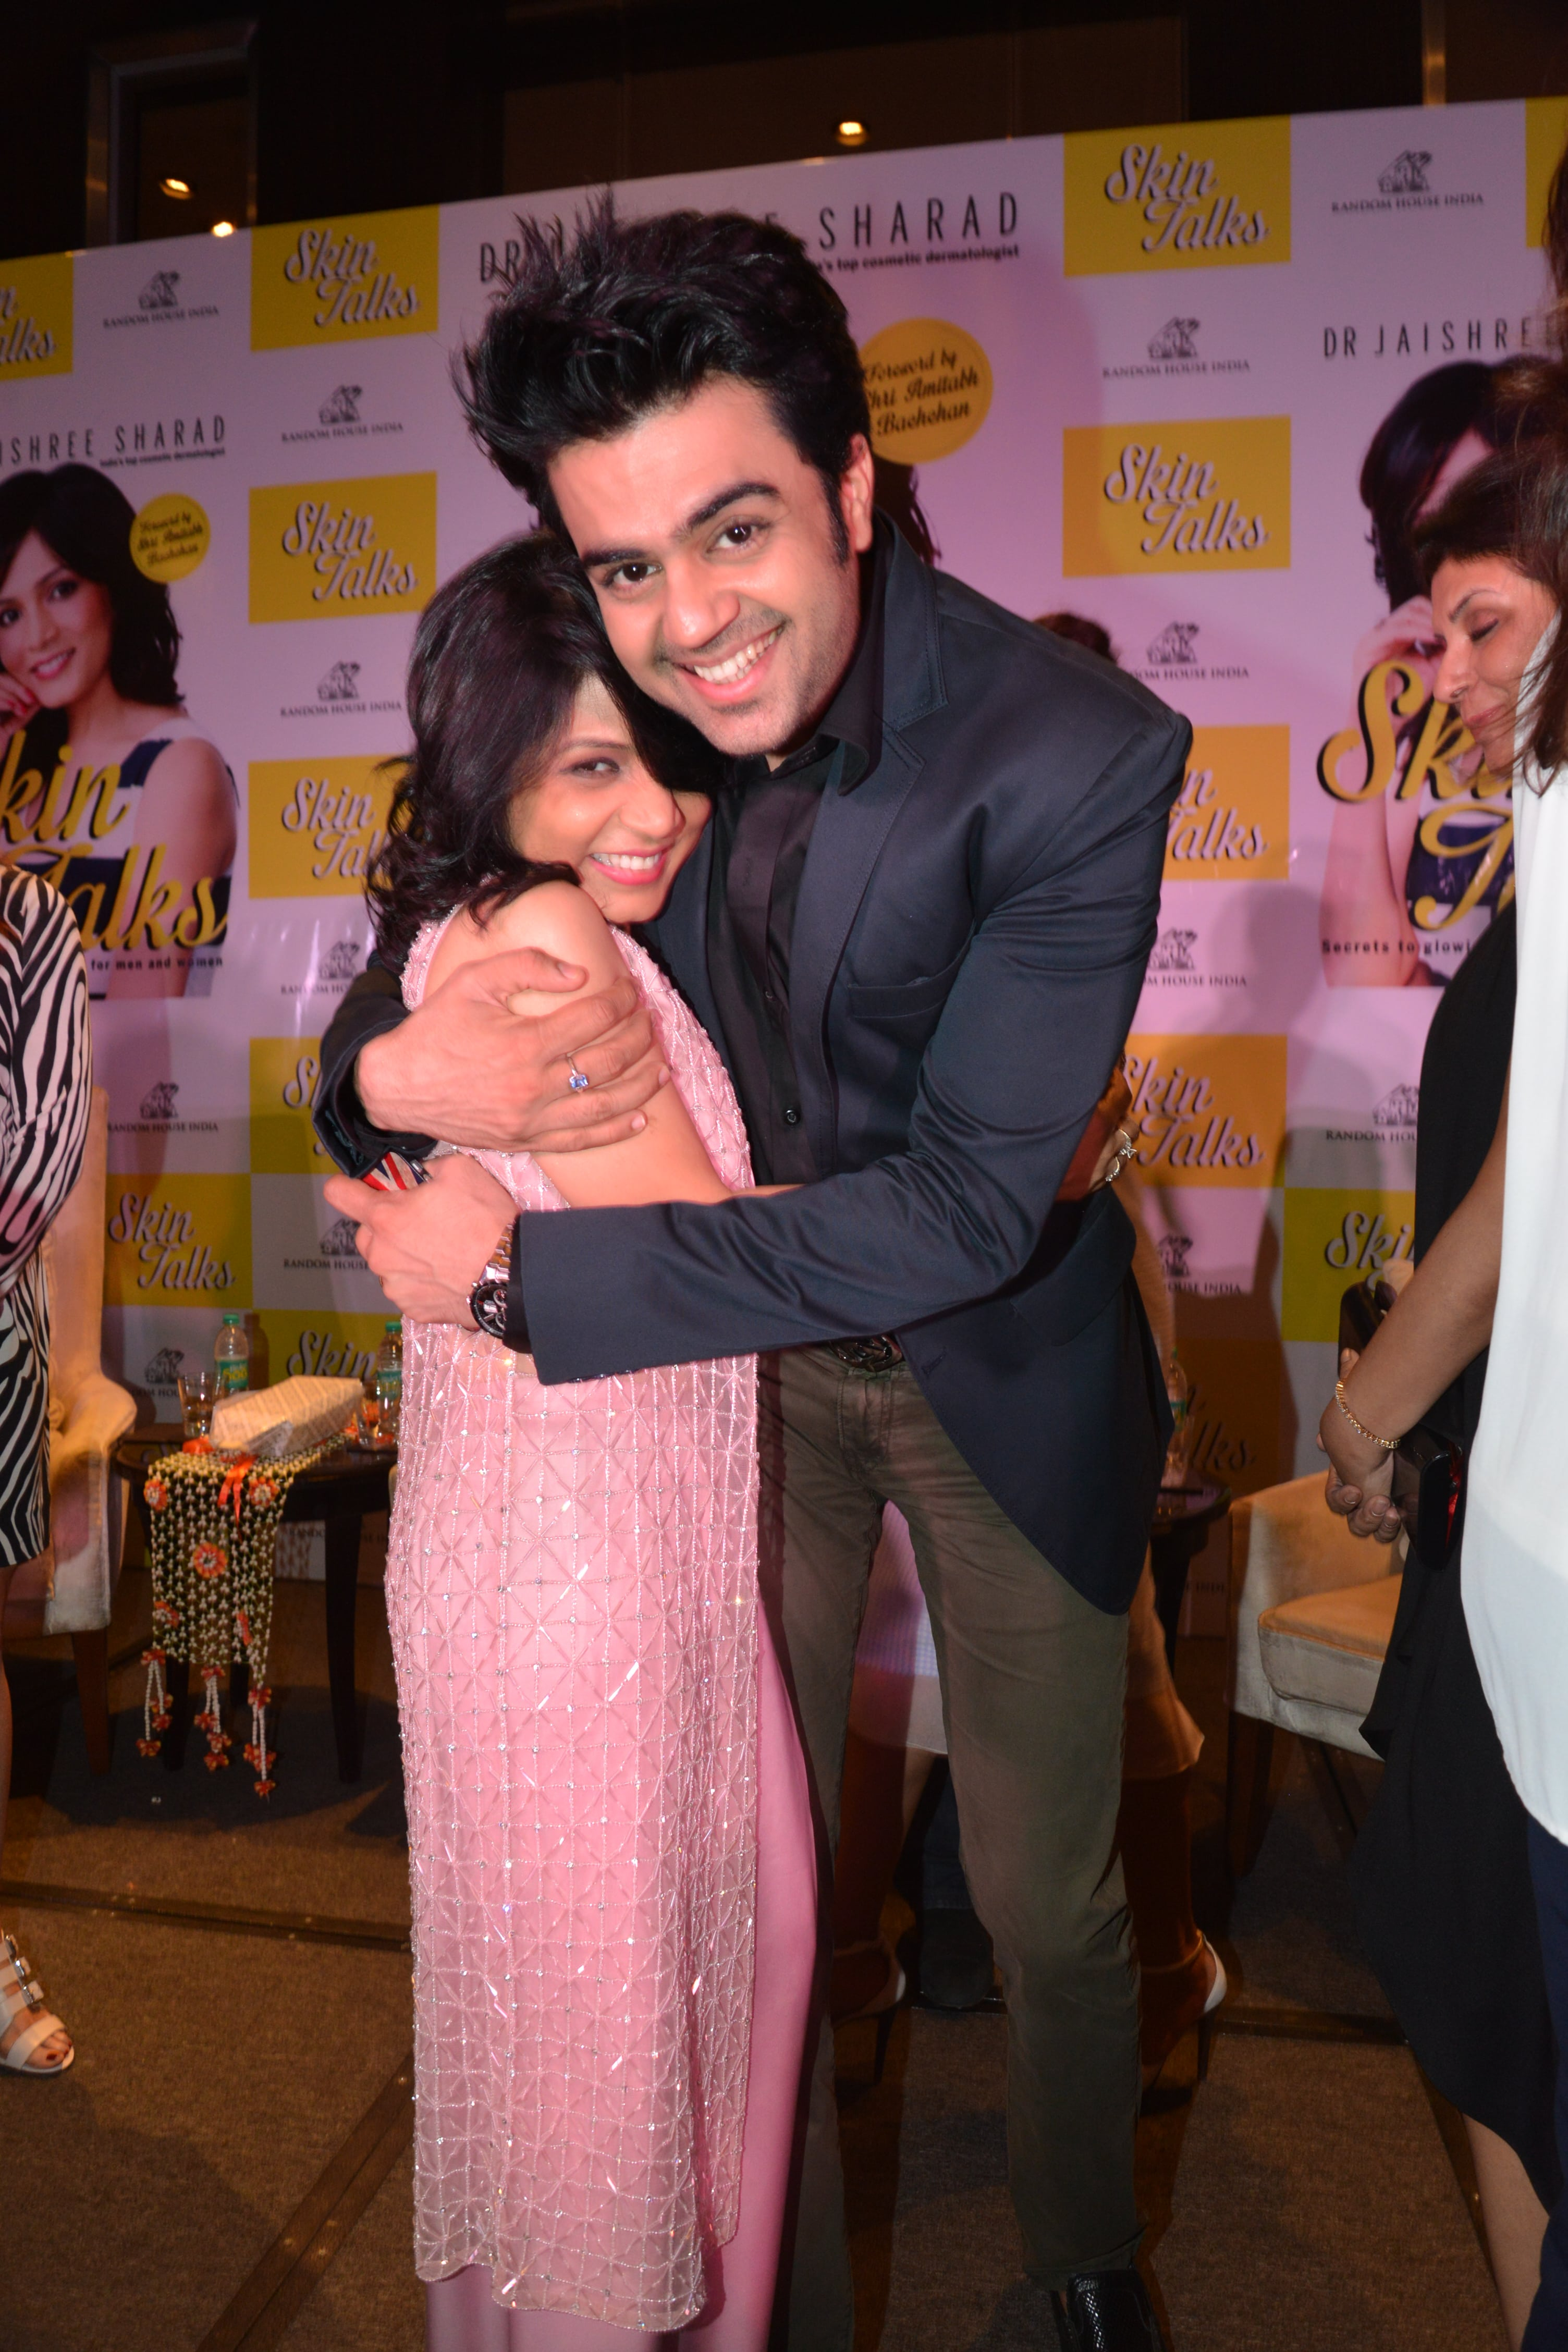 With a dear friend Manish Paul at the book launch